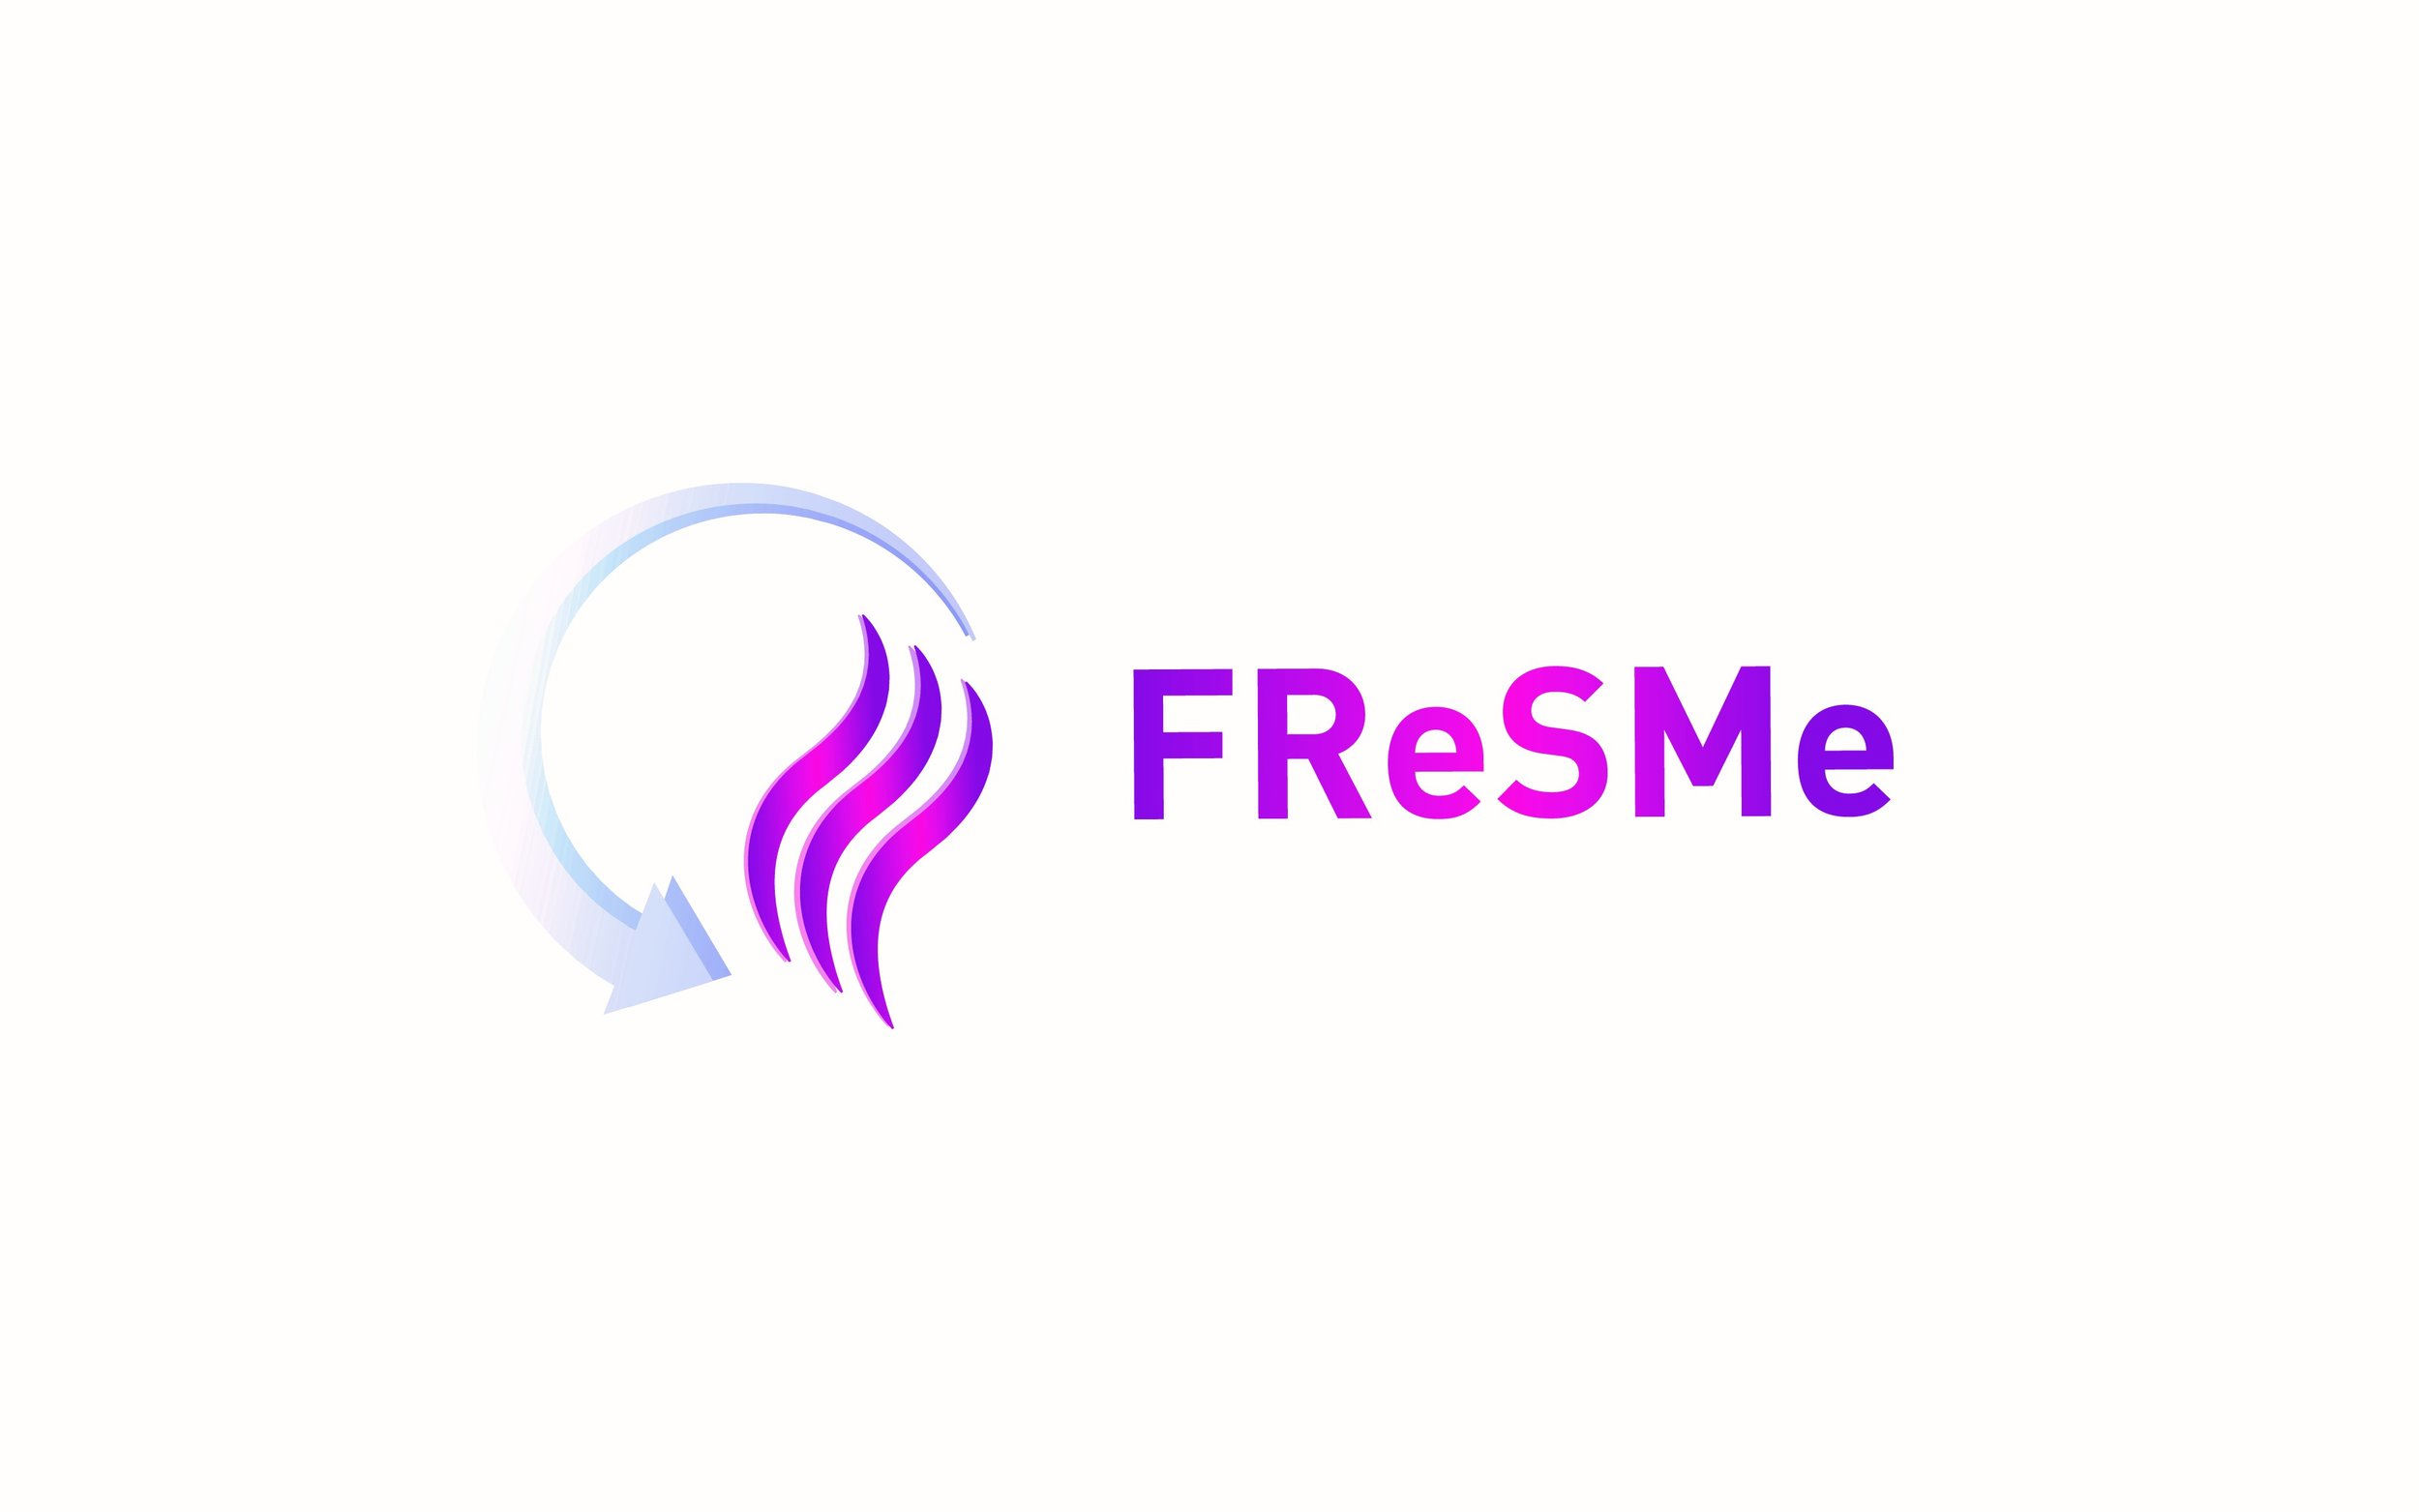 FReSMe Project